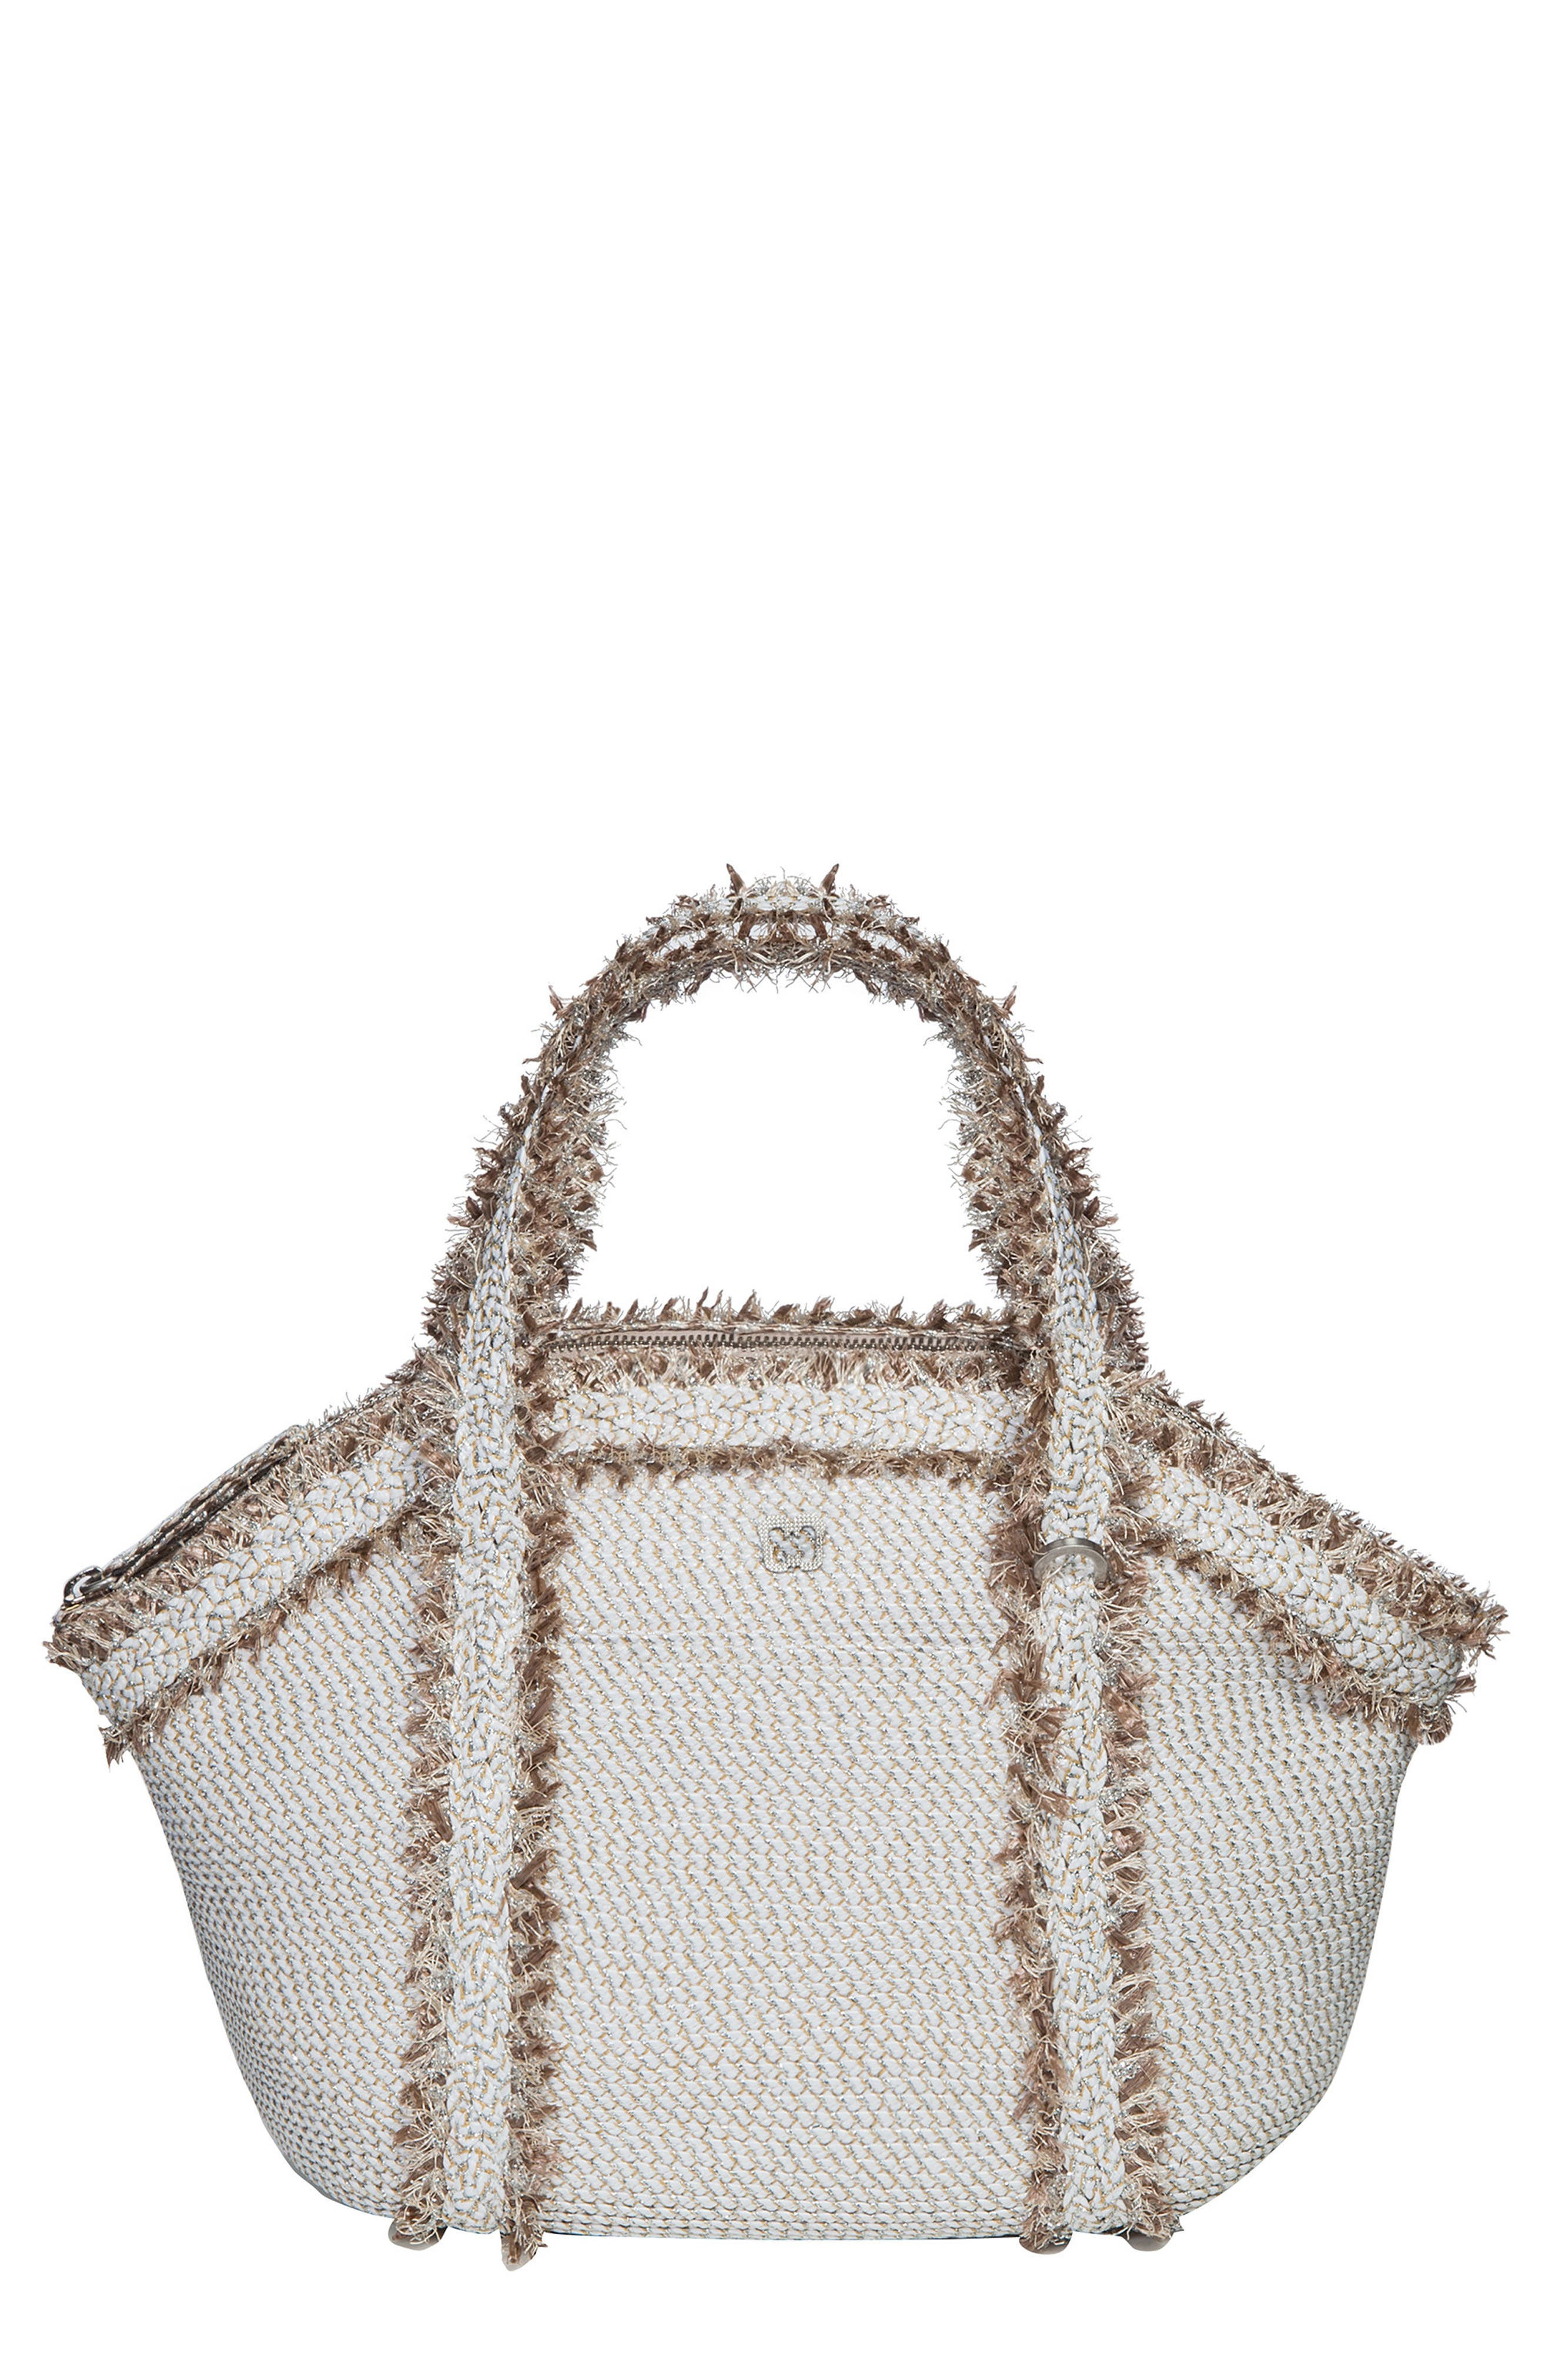 Covet Squishee<sup>®</sup> Satchel,                         Main,                         color, Ice